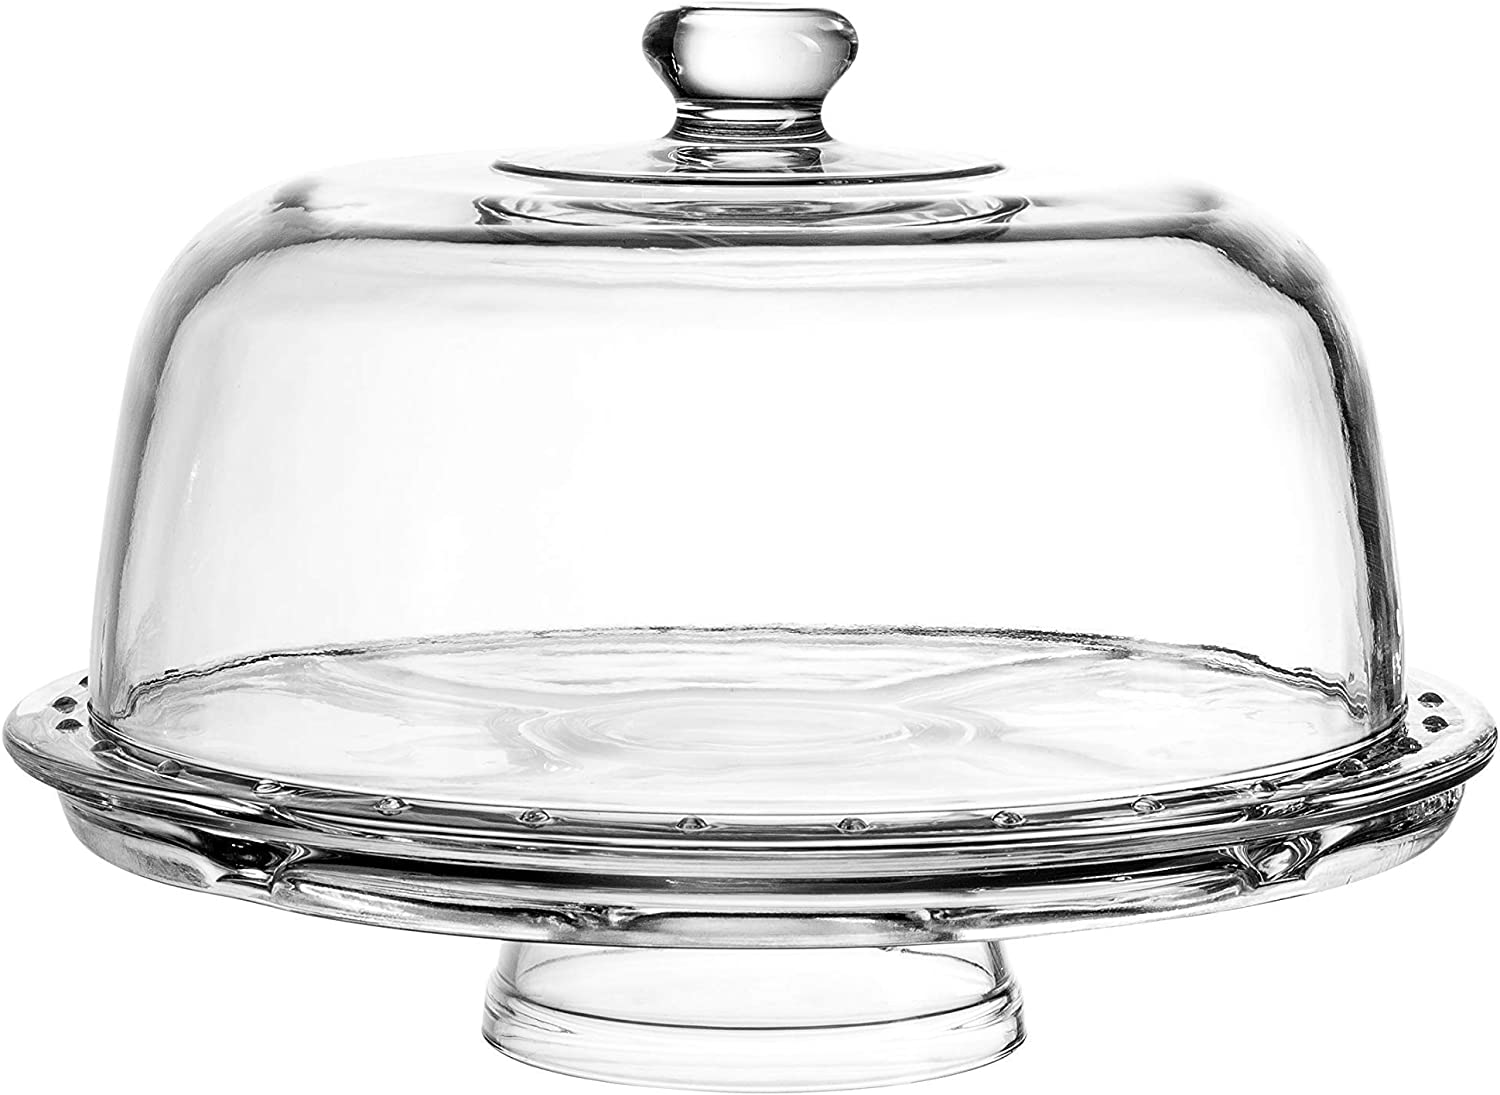 European Cake Stand with Dome (6-in-1 Design) Multifunctional Serving Platter for Kitchens, Dining Rooms , Pedes Glass Durabilitytal or Cover Use , Elegant